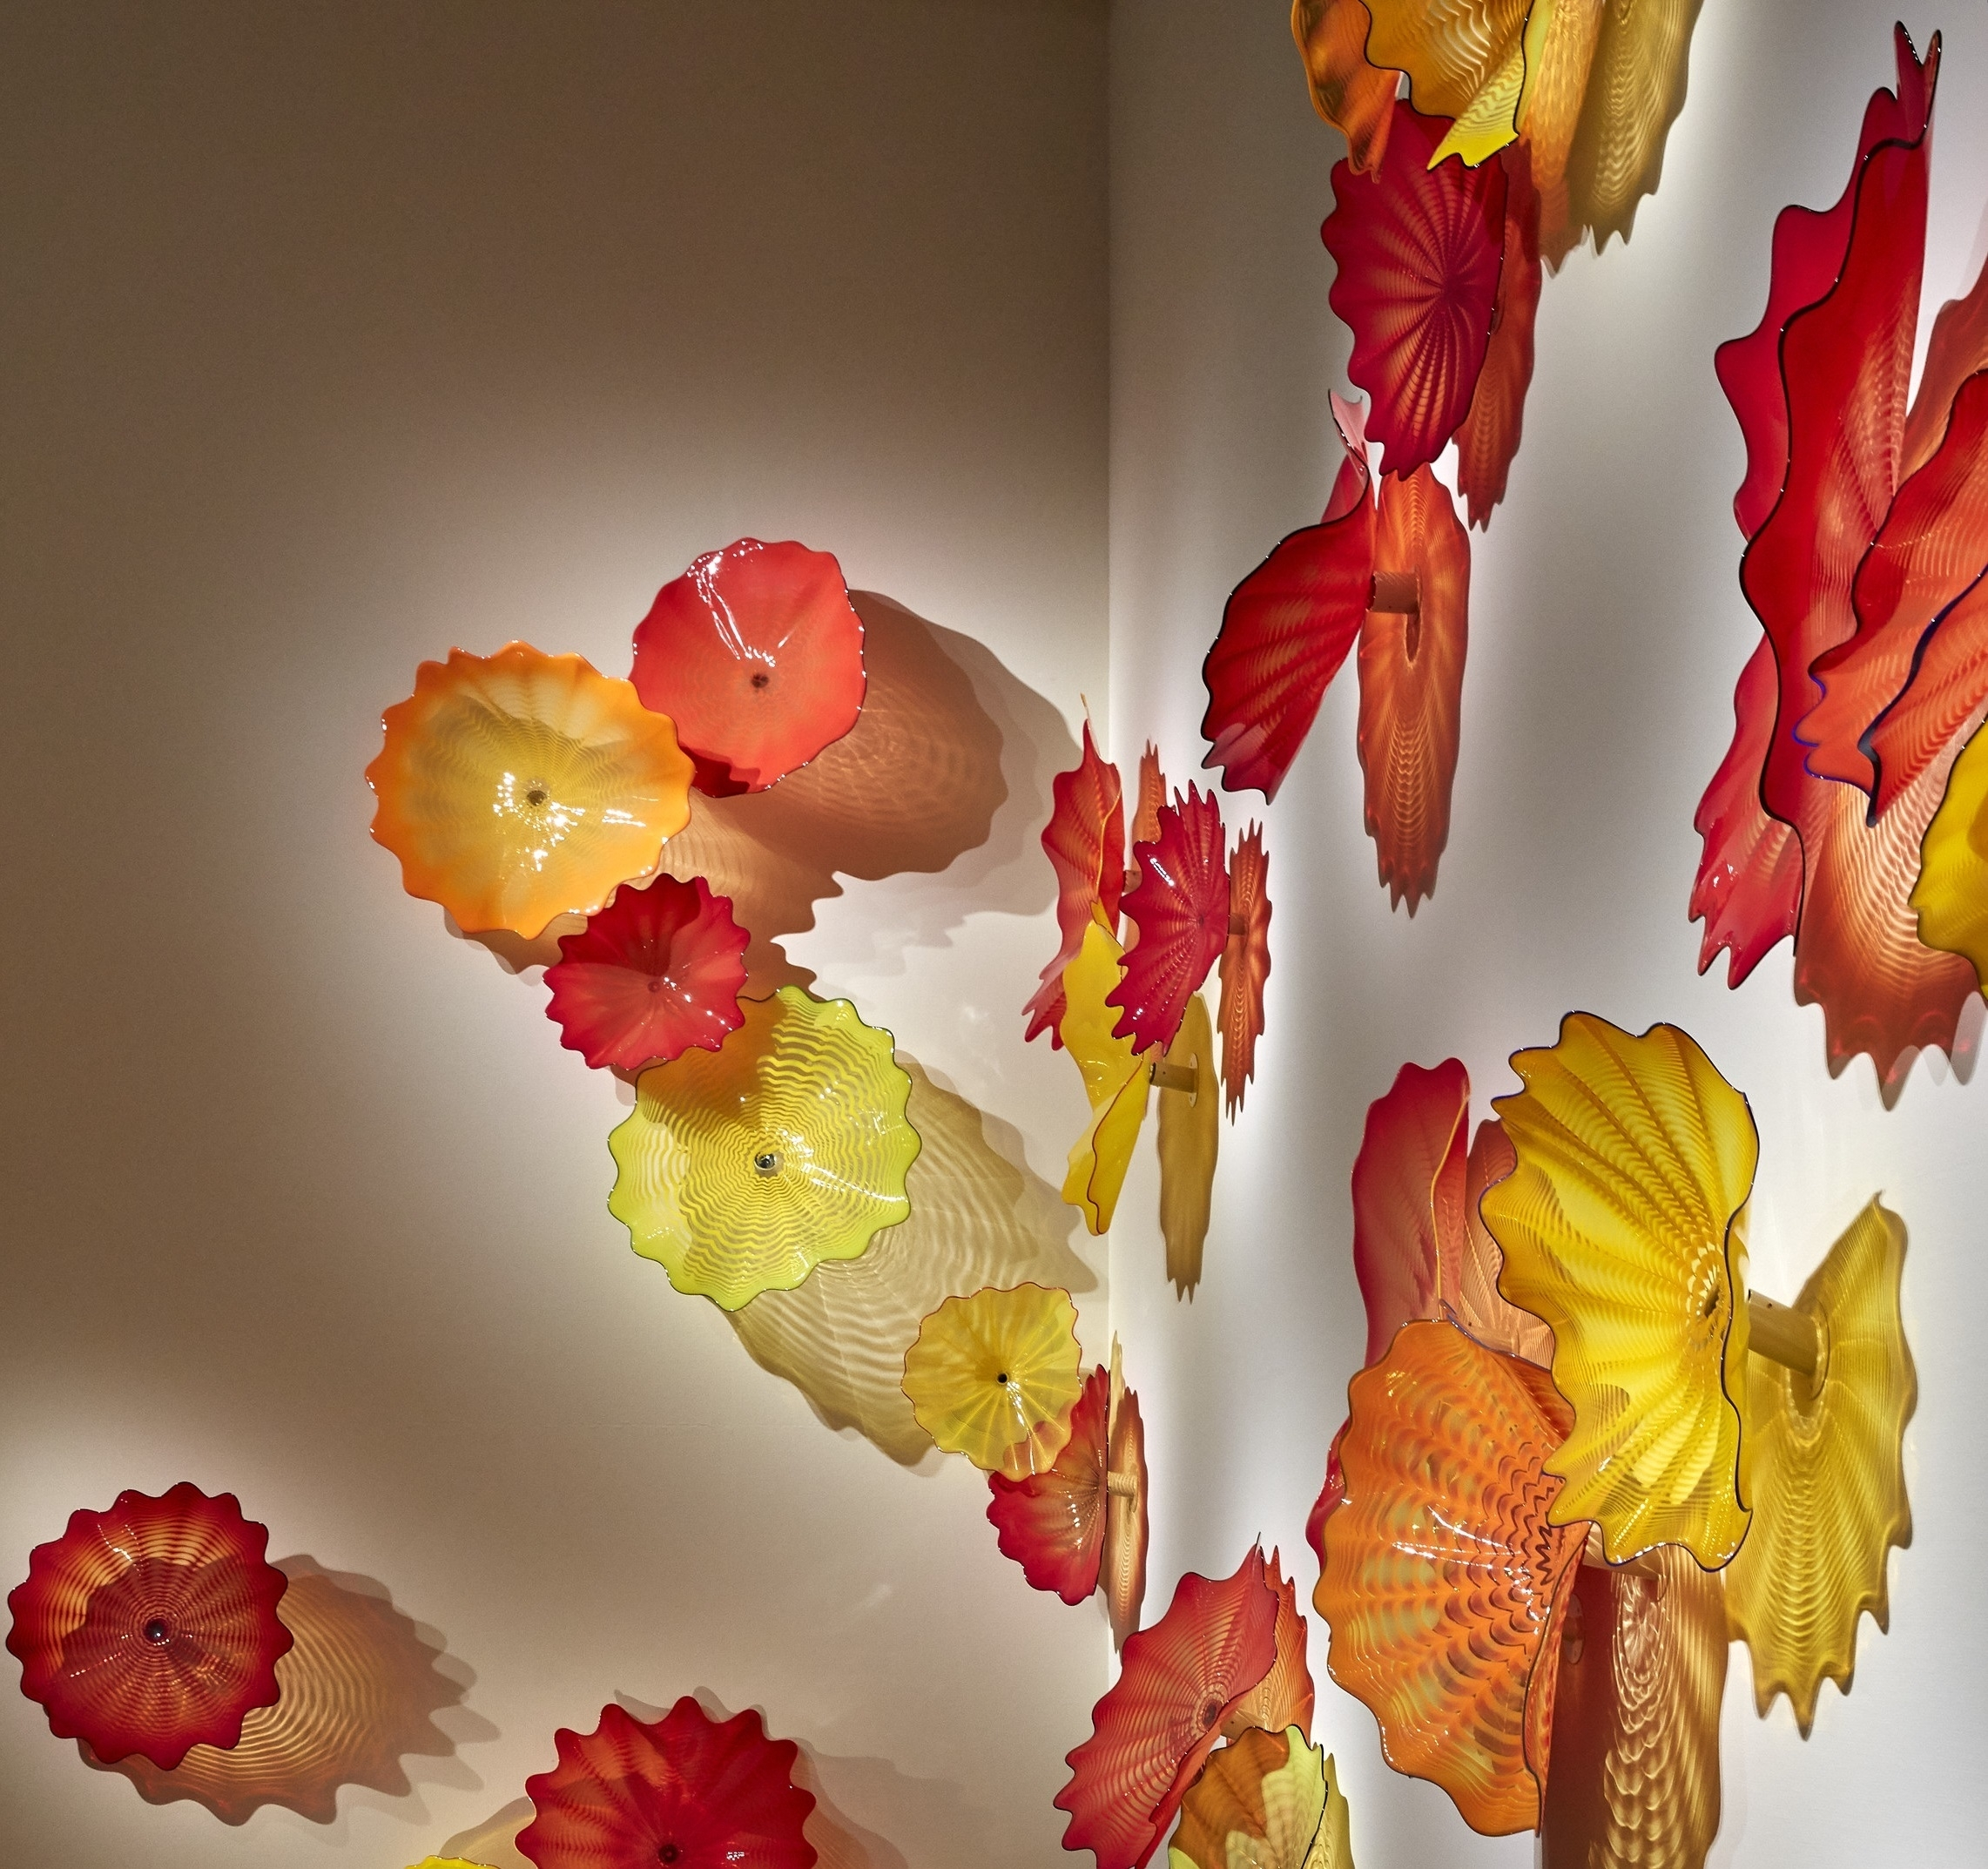 Chihuly_Grand Stairwell Installation